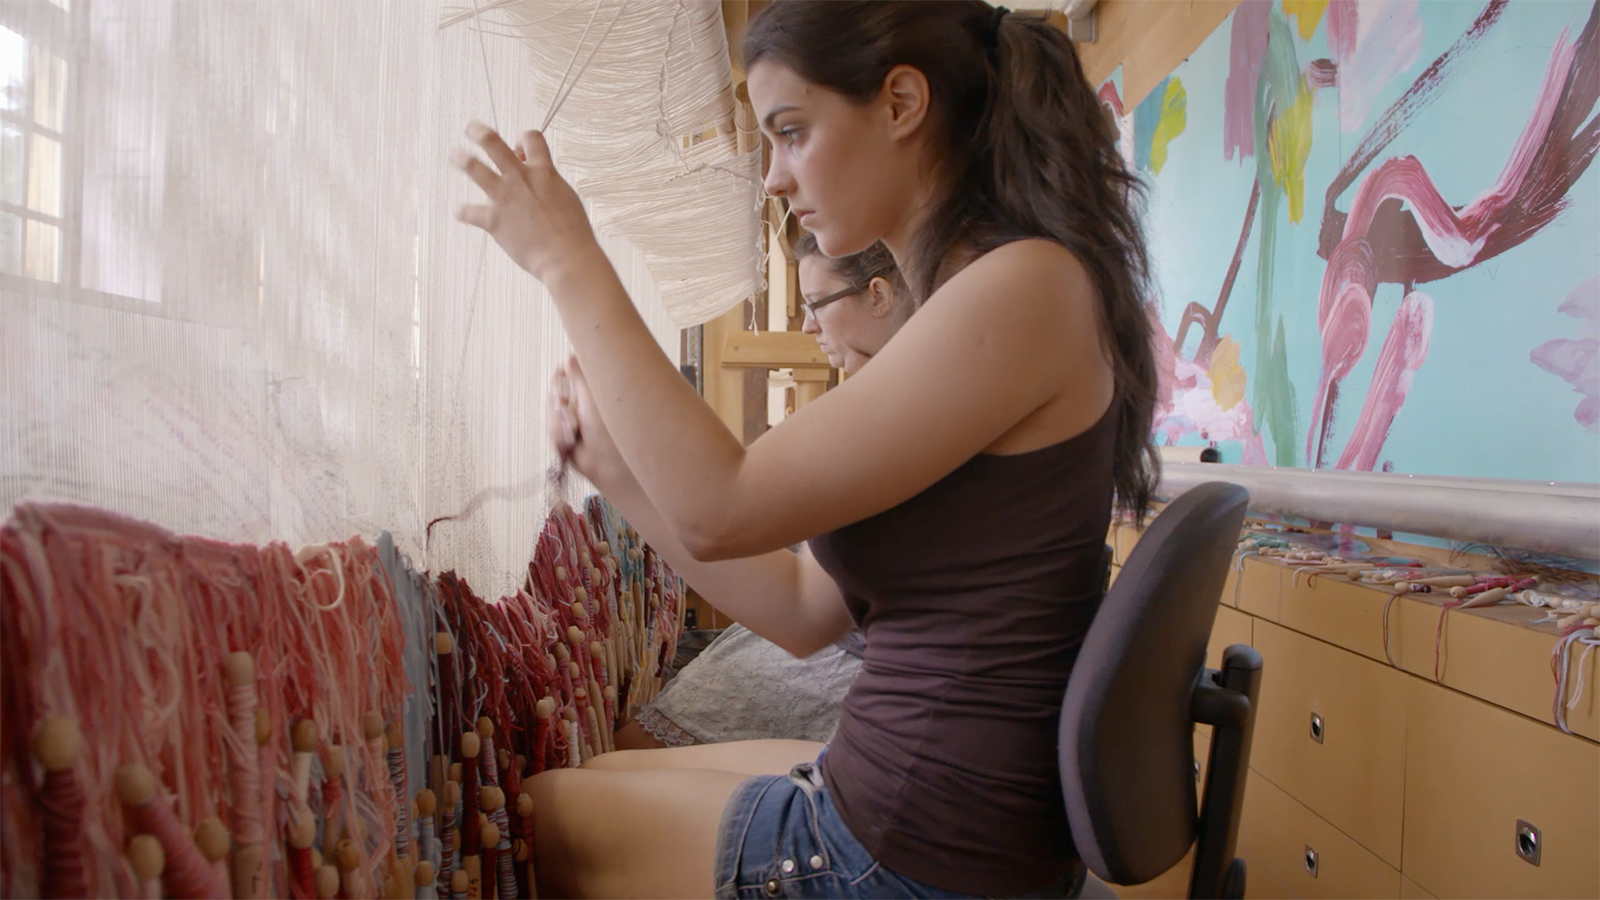 A woman in a tank top and denim shorts, sits before a large unfinished tapestry, holding threads as she weaves.